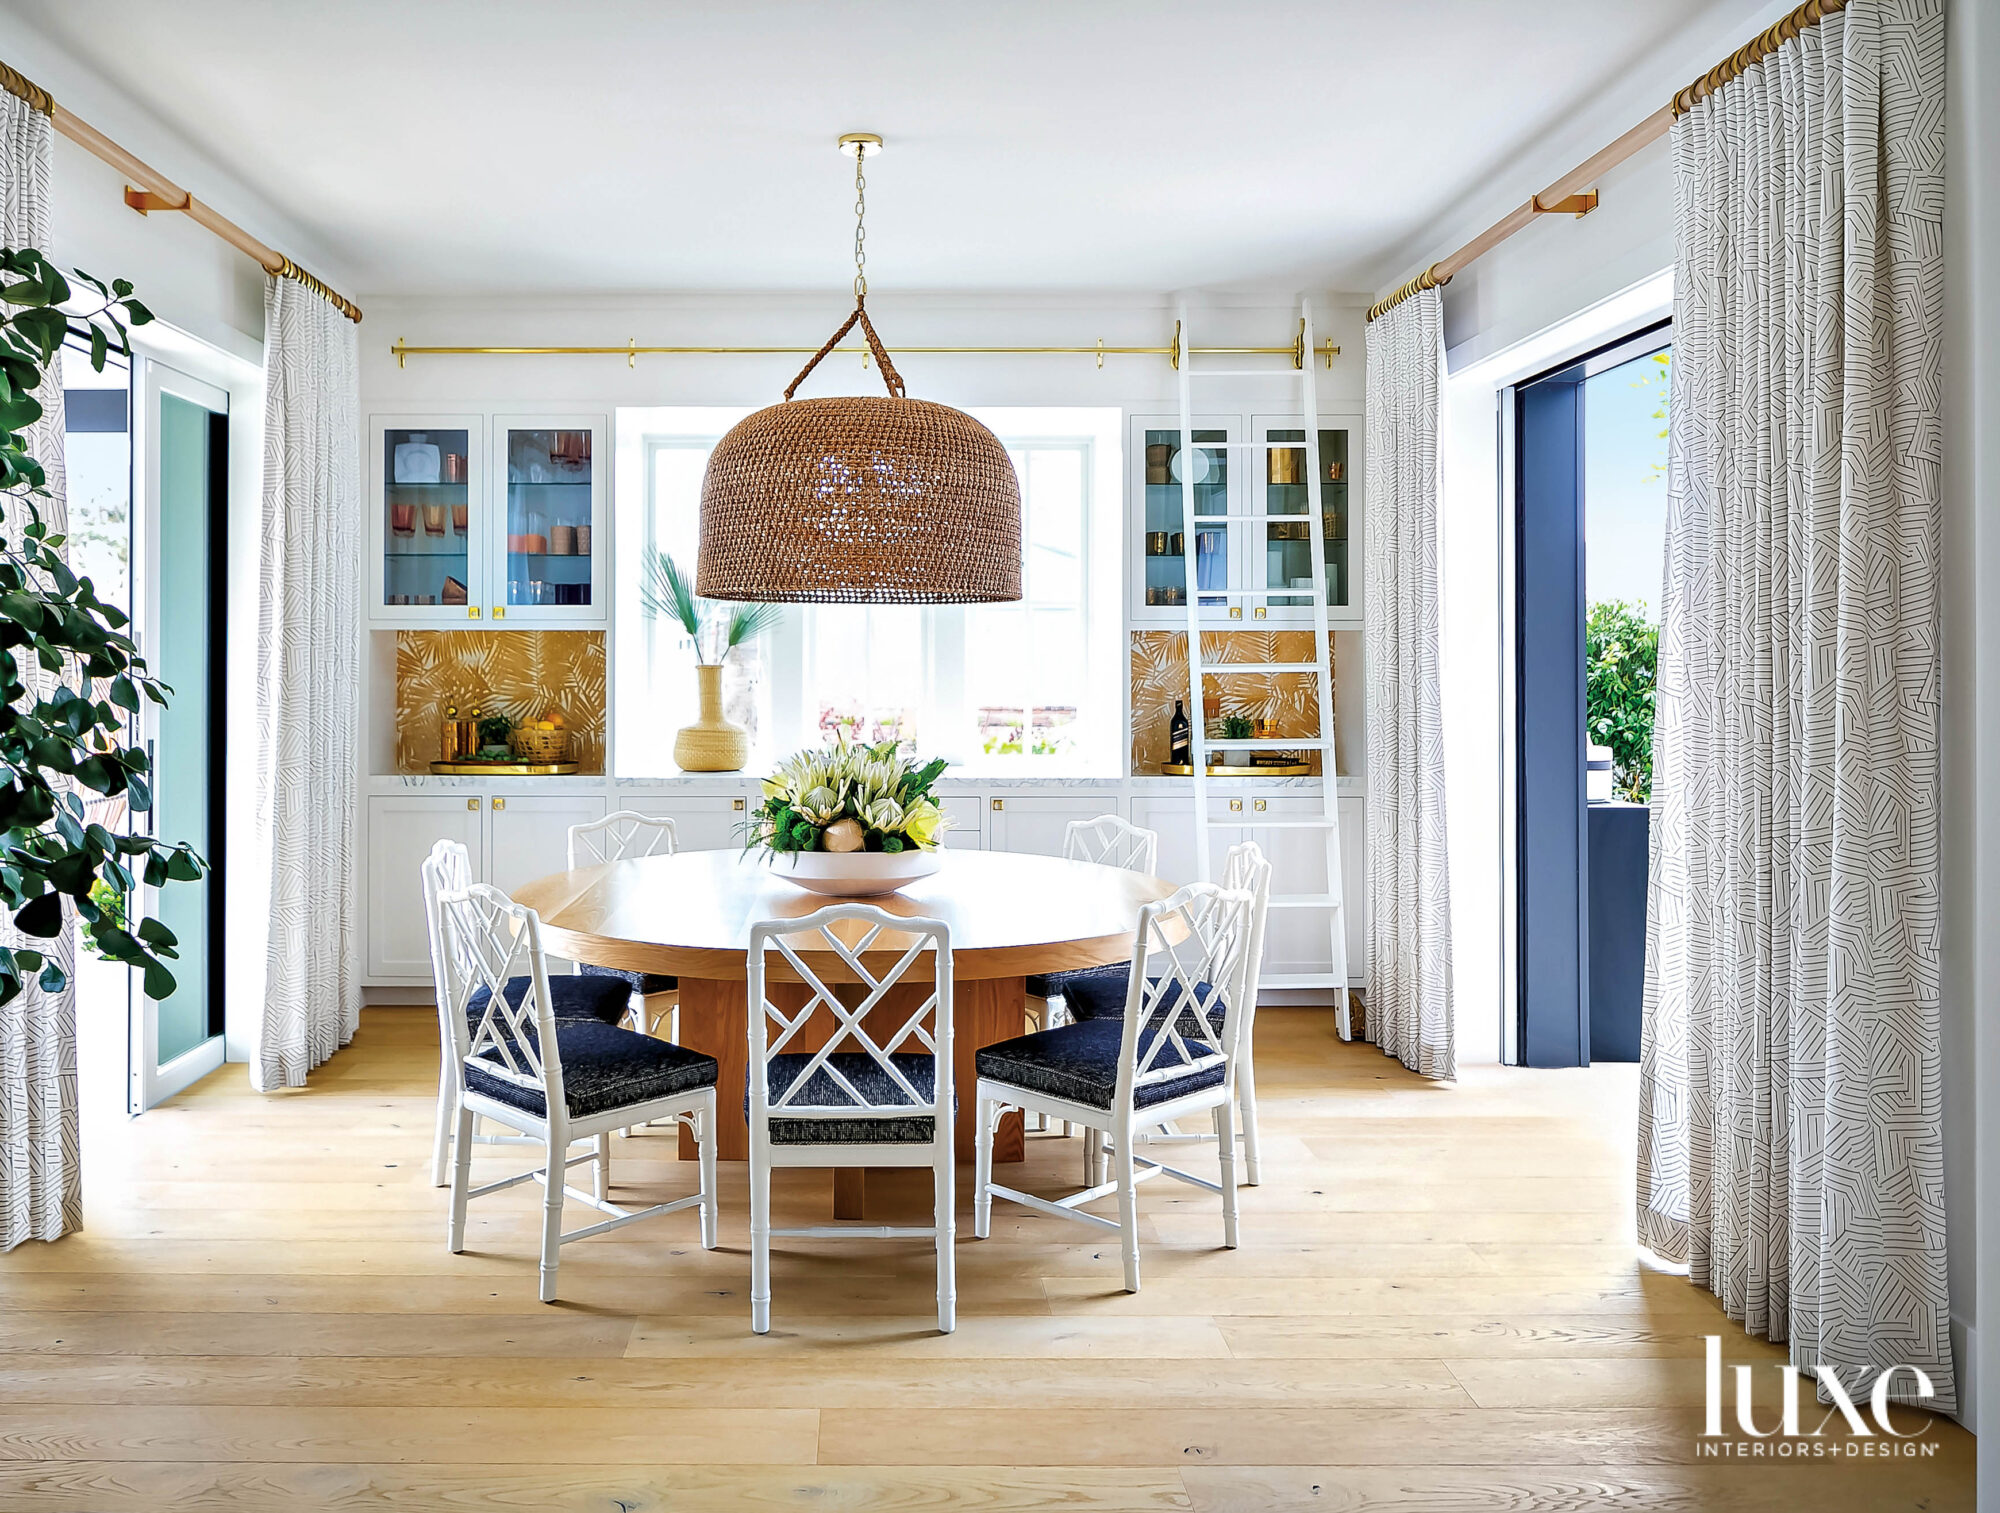 Dining area with round table...